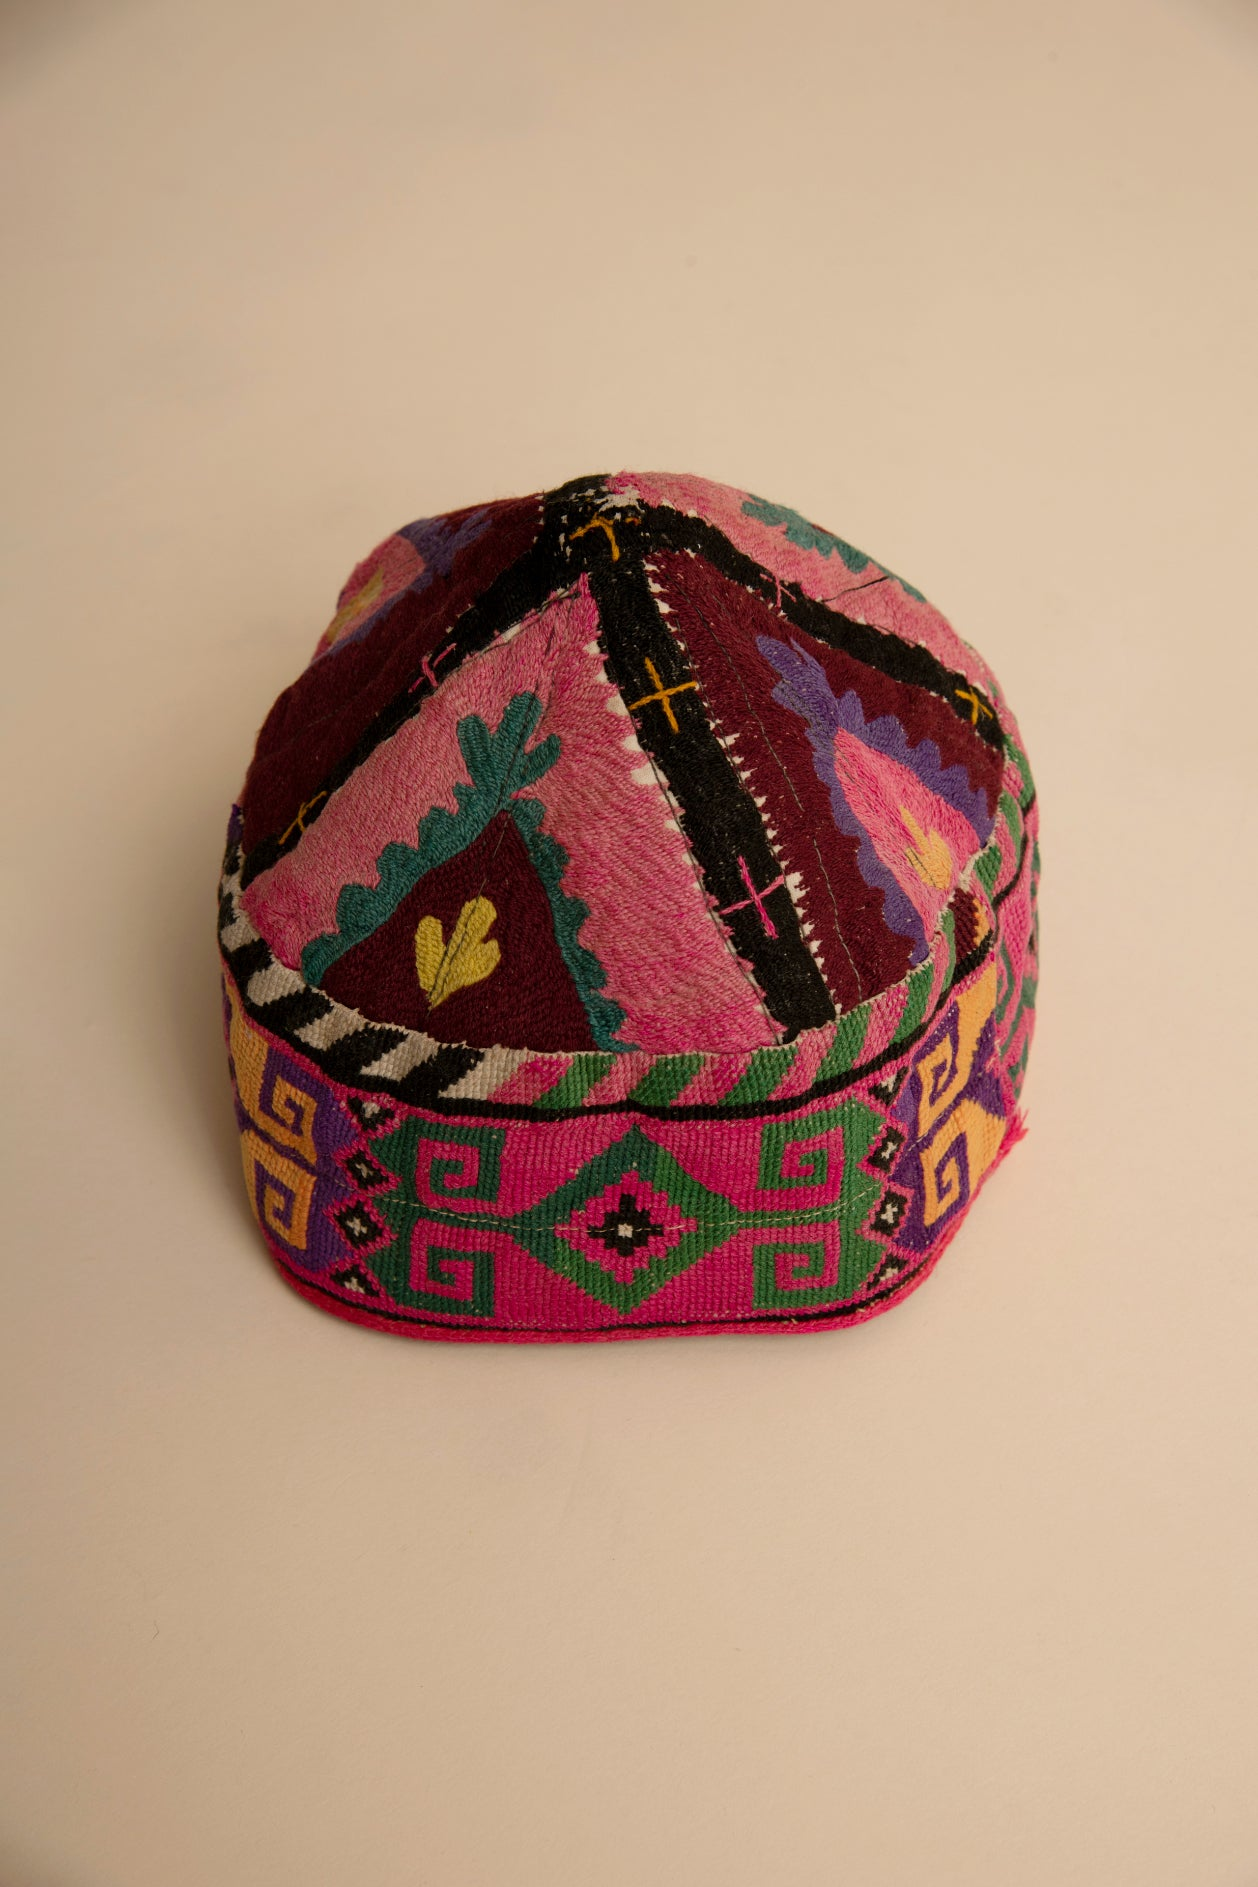 Hand Embroidered Antique Cap